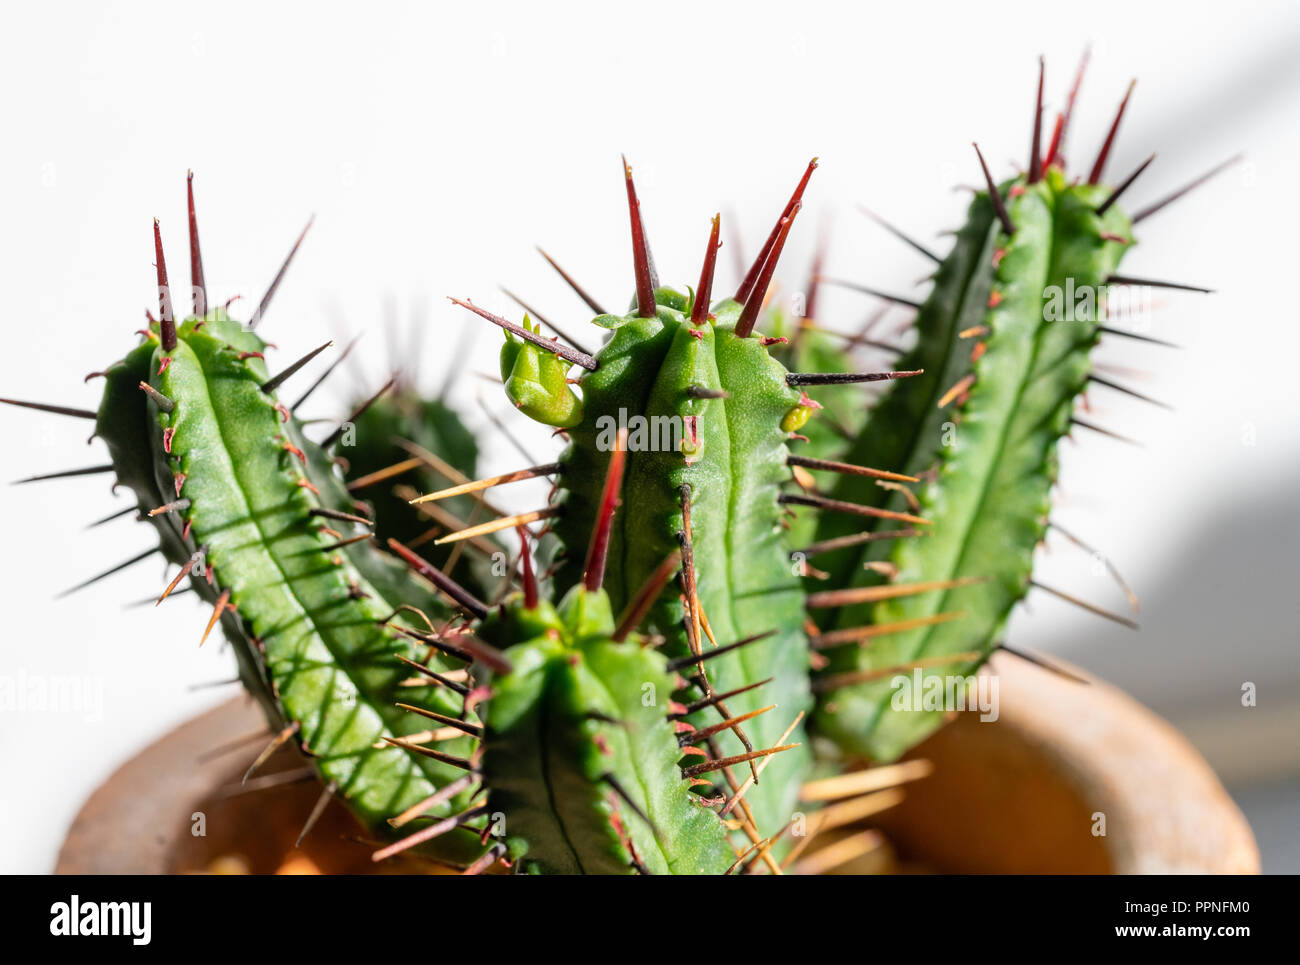 Close up of a small young Euphorbia heptagona cactus with its red coloured spines and a new vertex emerging - Stock Image